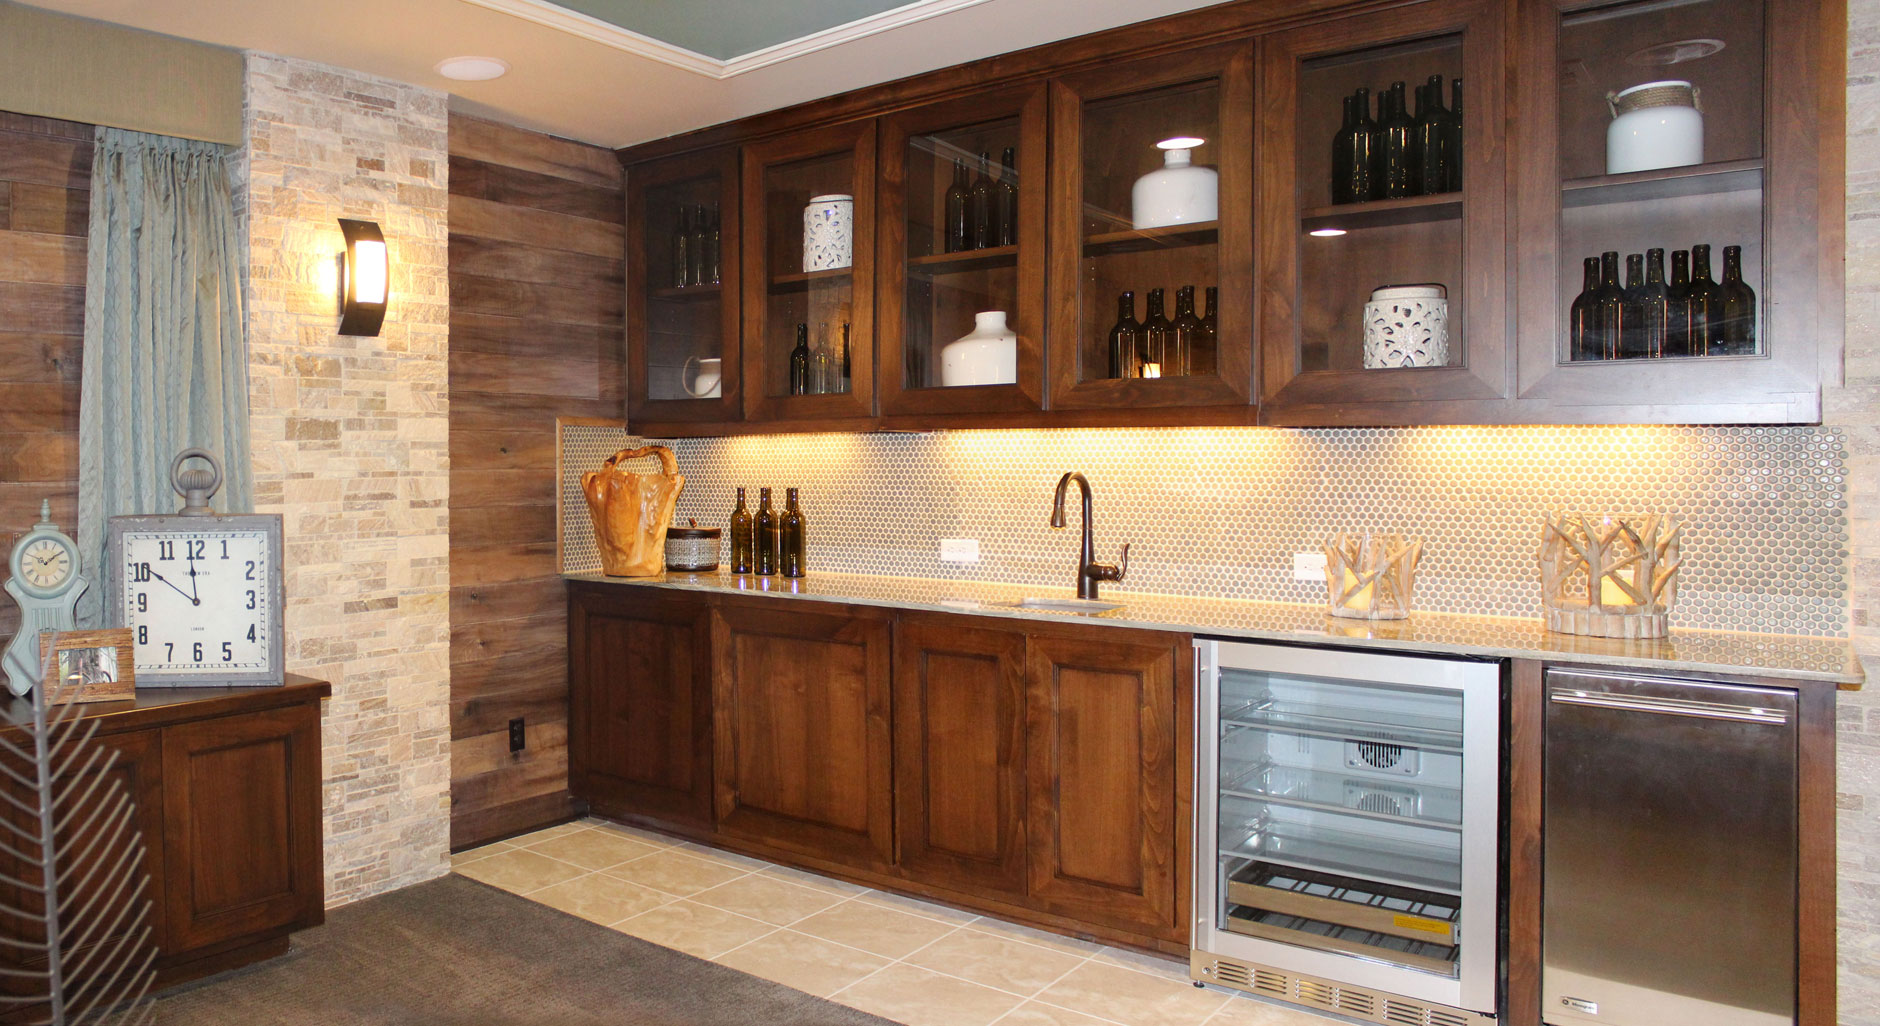 Image gallery wet bar Wet bar images